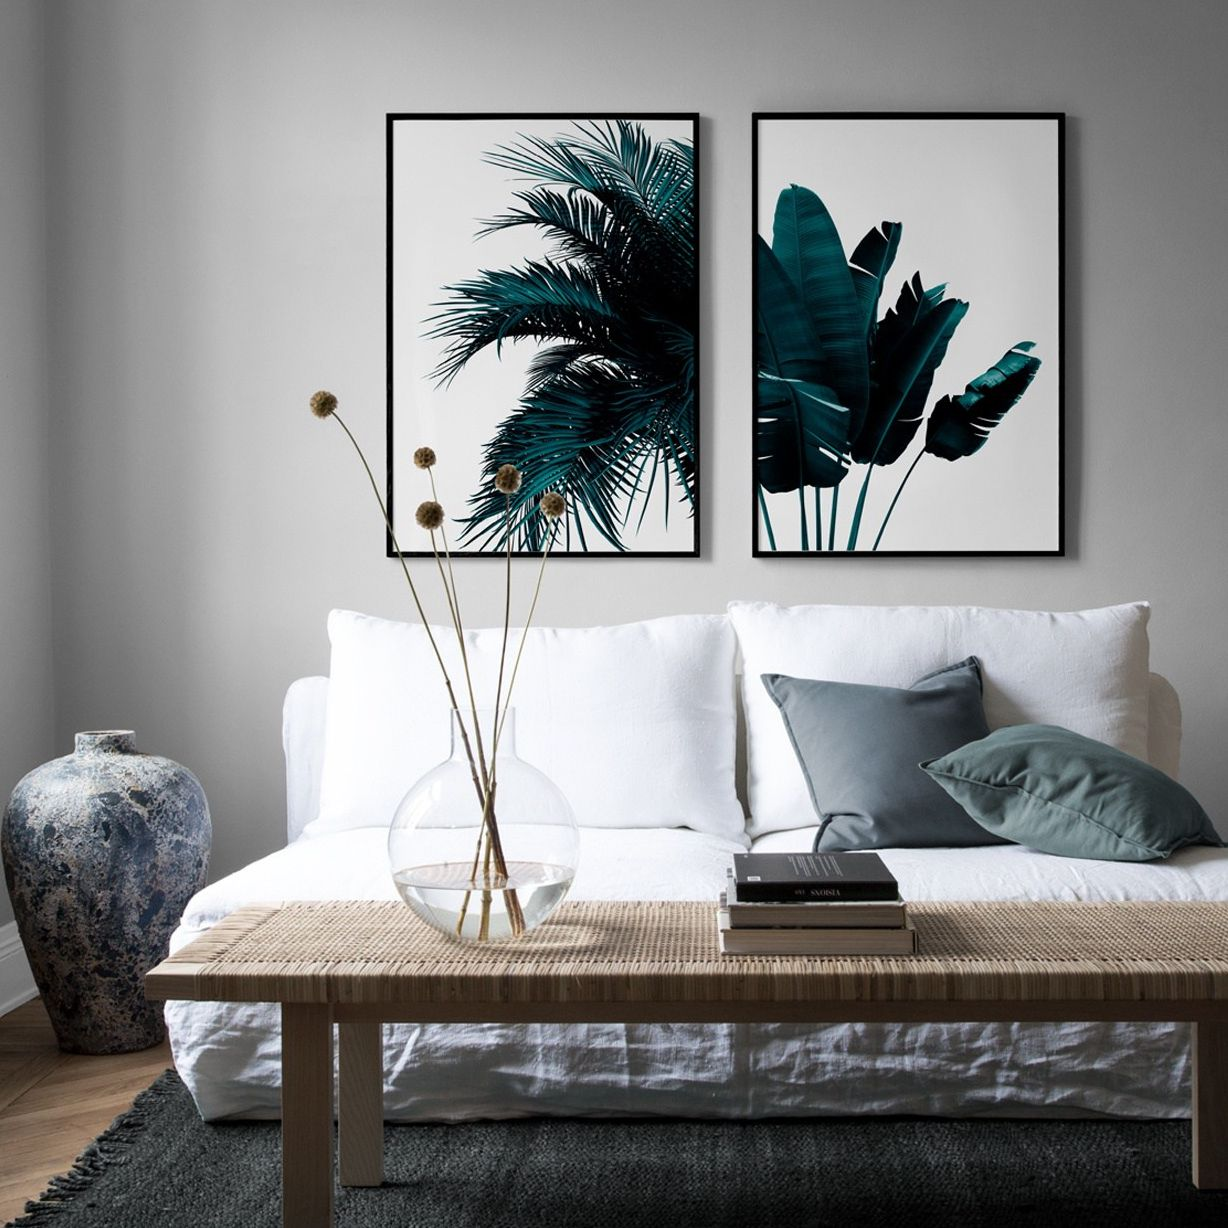 How To Give Your Home Pinterest Worthy Wall Art images